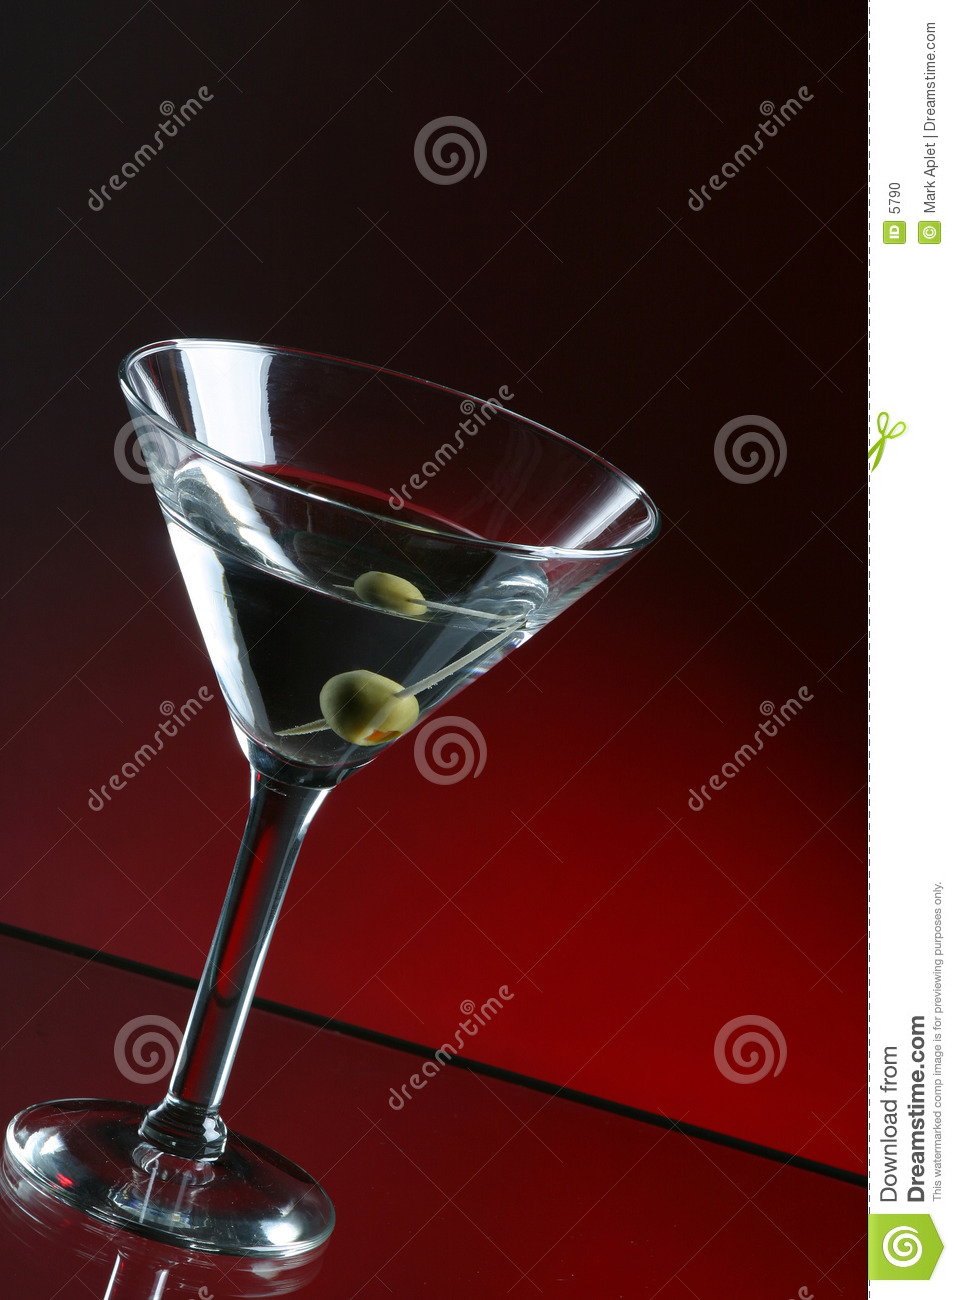 Coctail martini